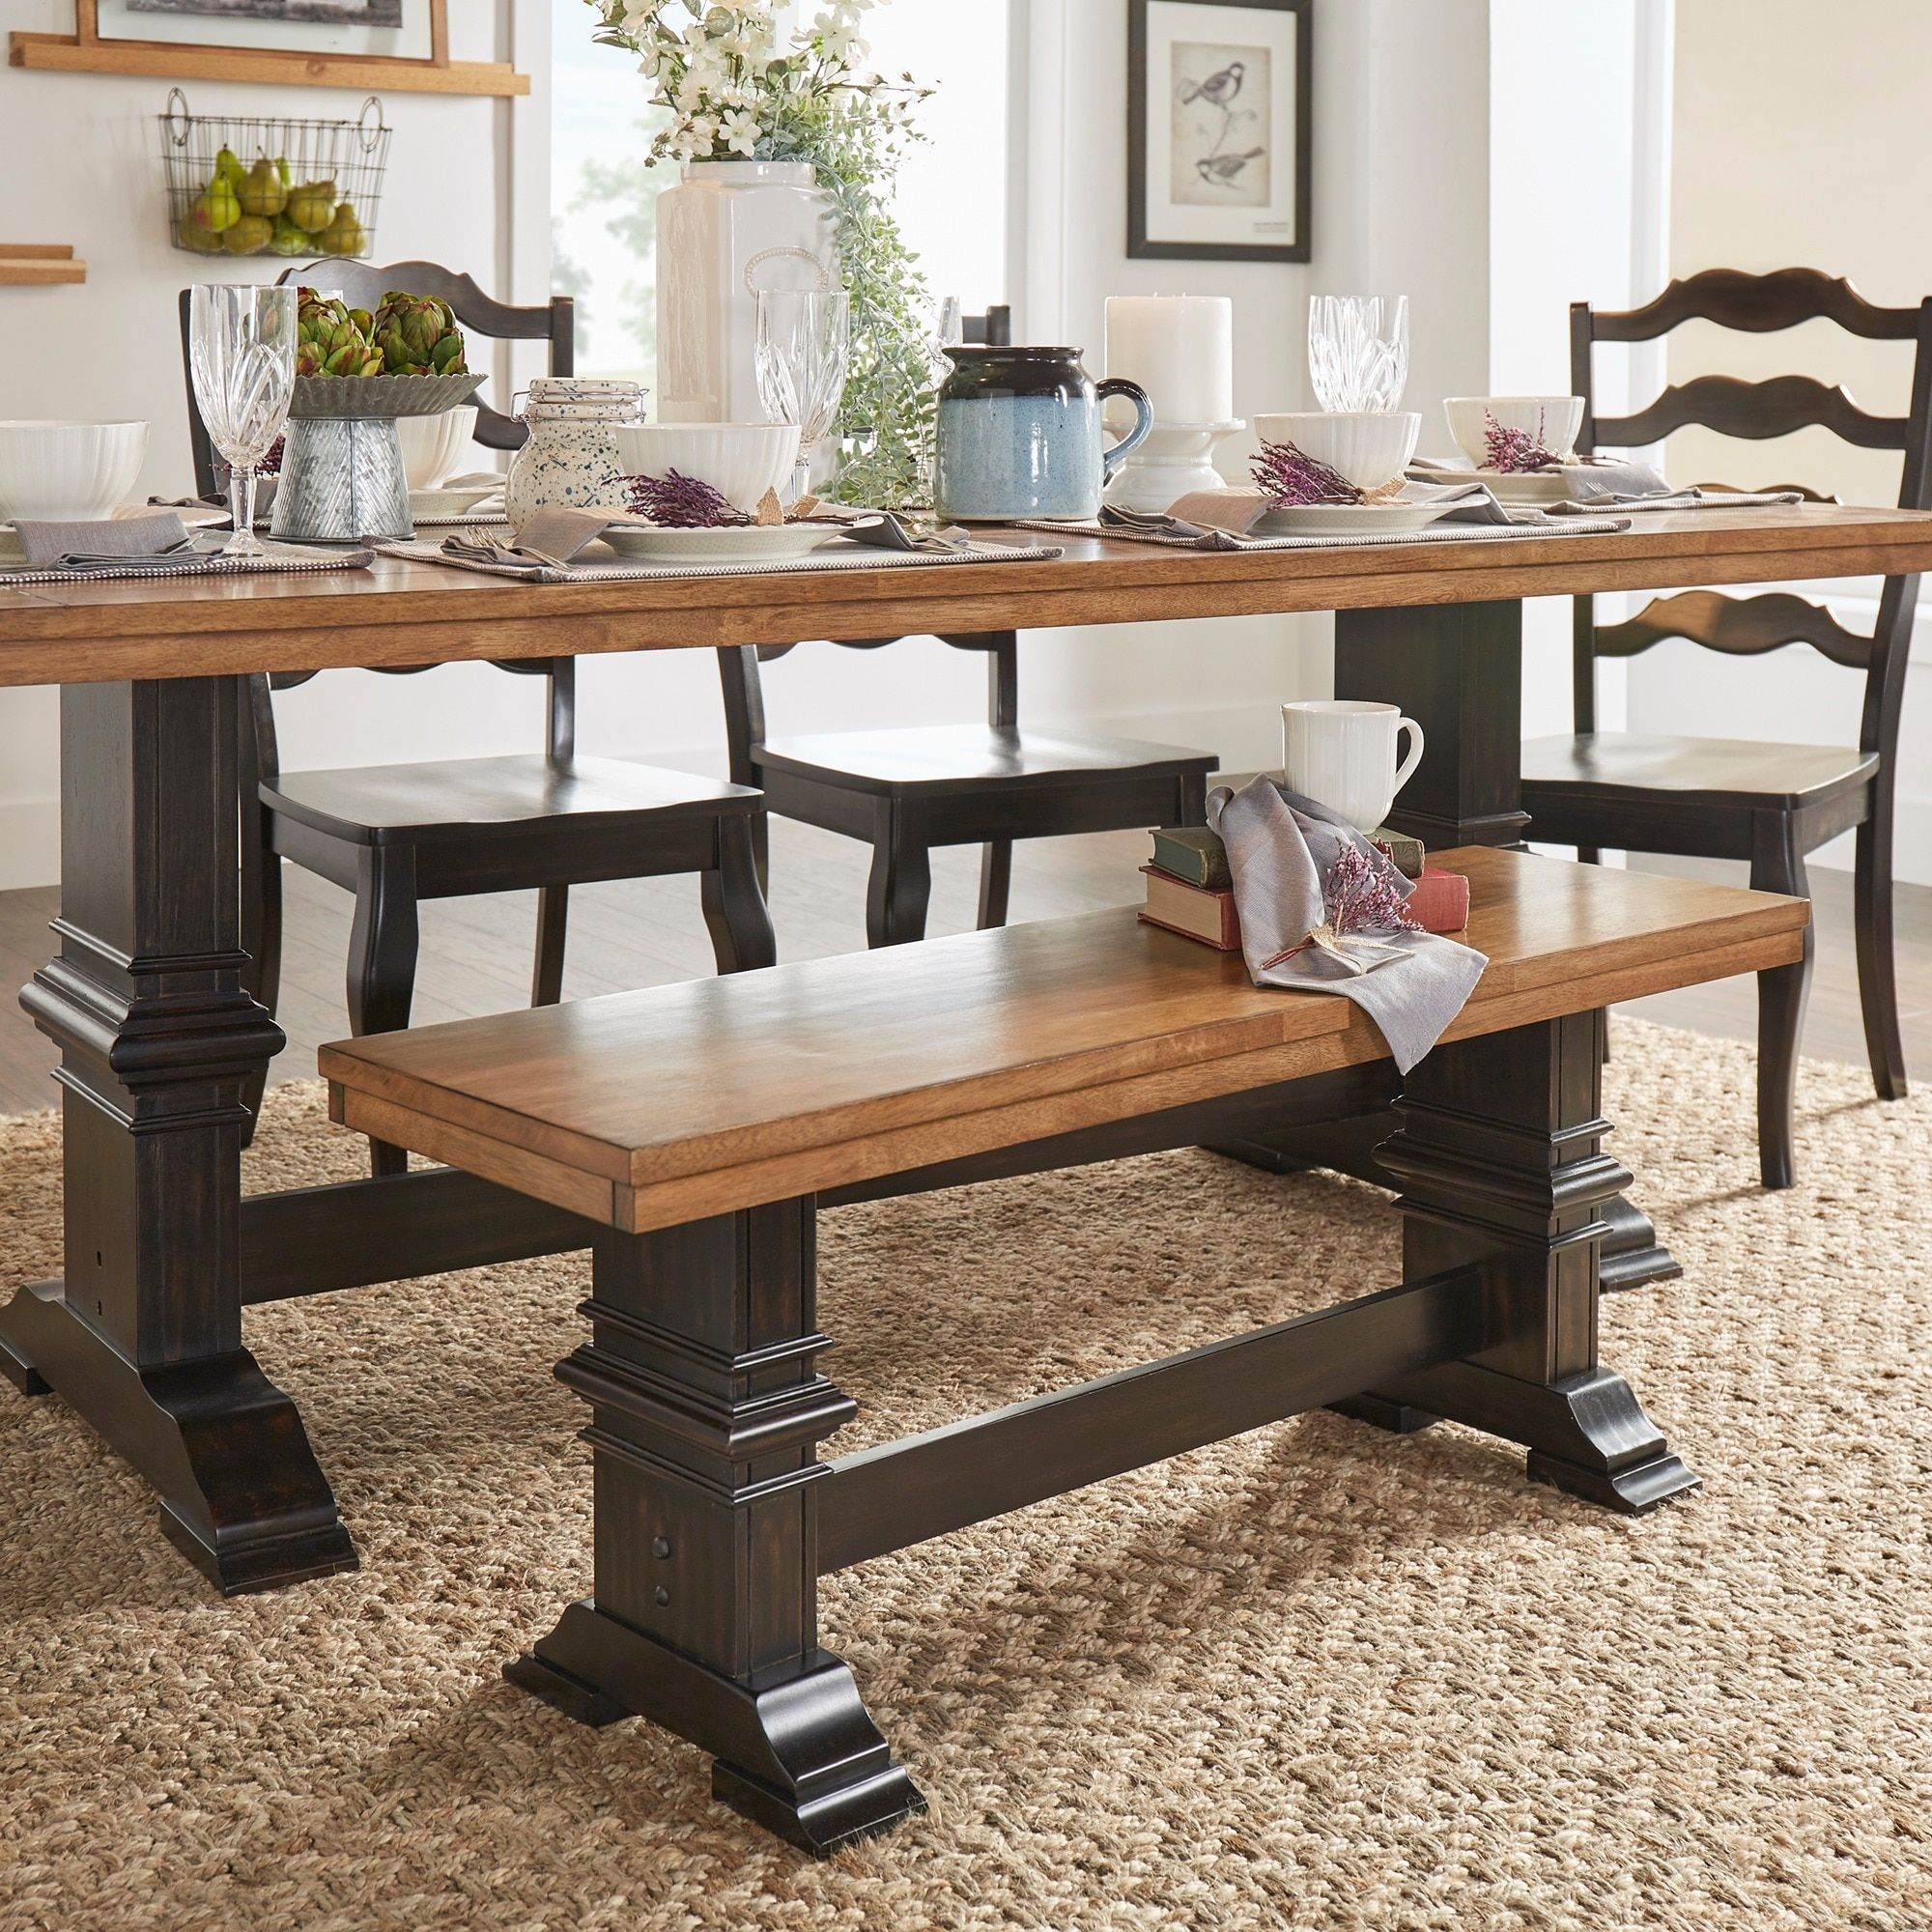 Eleanor Two Tone Trestle Leg Wood Dining Bench By Tribecca Home (Oak Top And